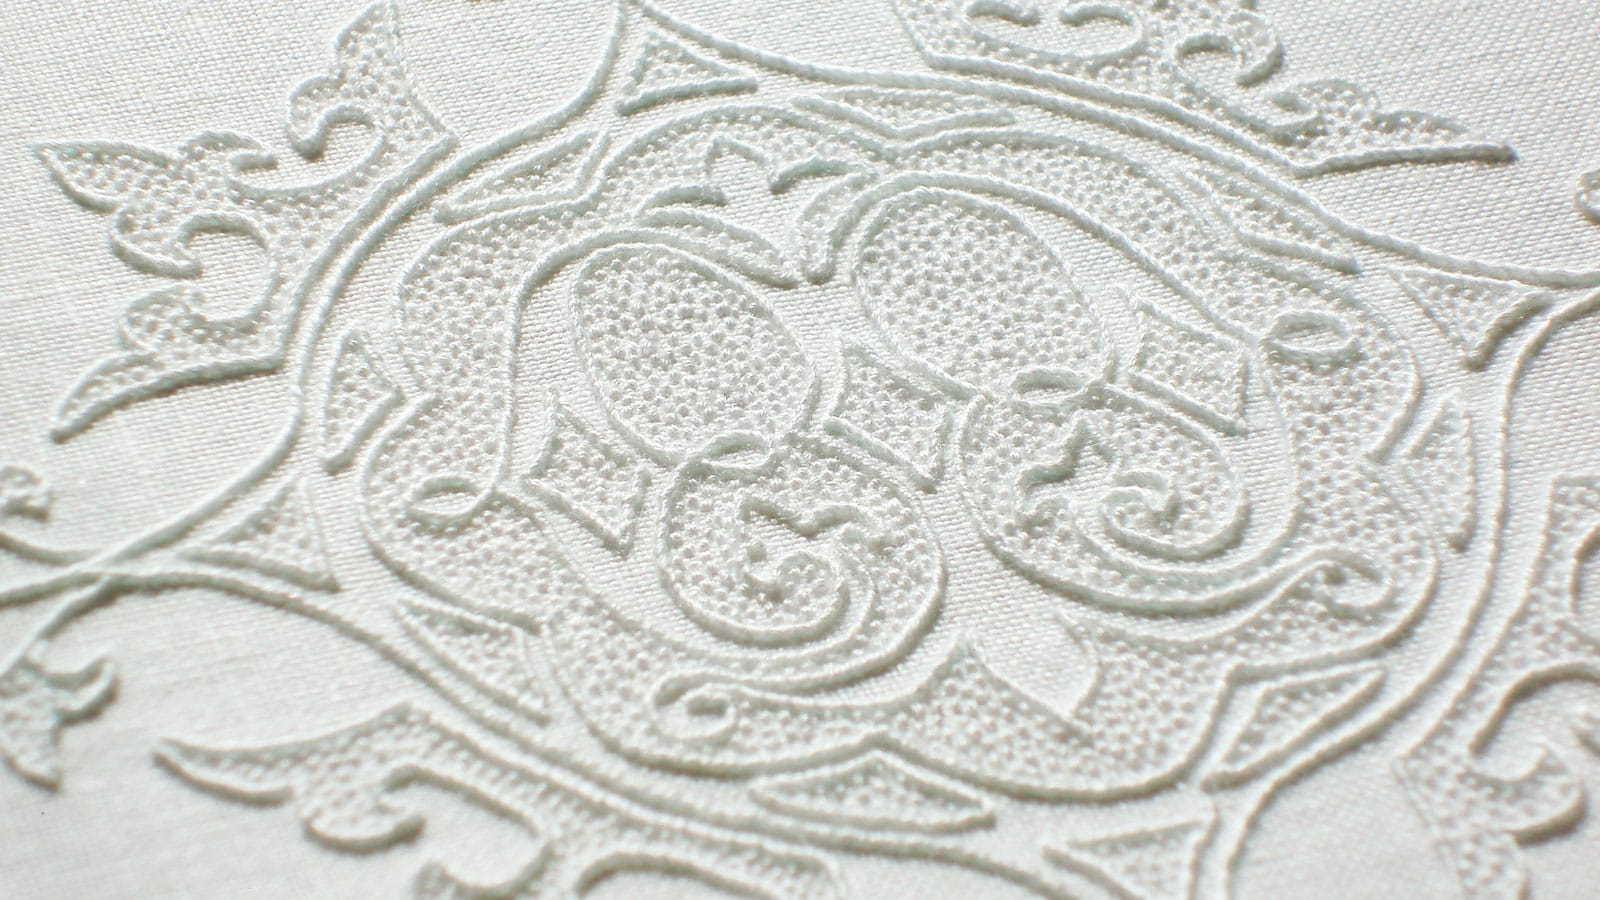 Hand Embroidery Christmas Patterns Needlenthread Tips Tricks And Great Resources For Hand Embroidery